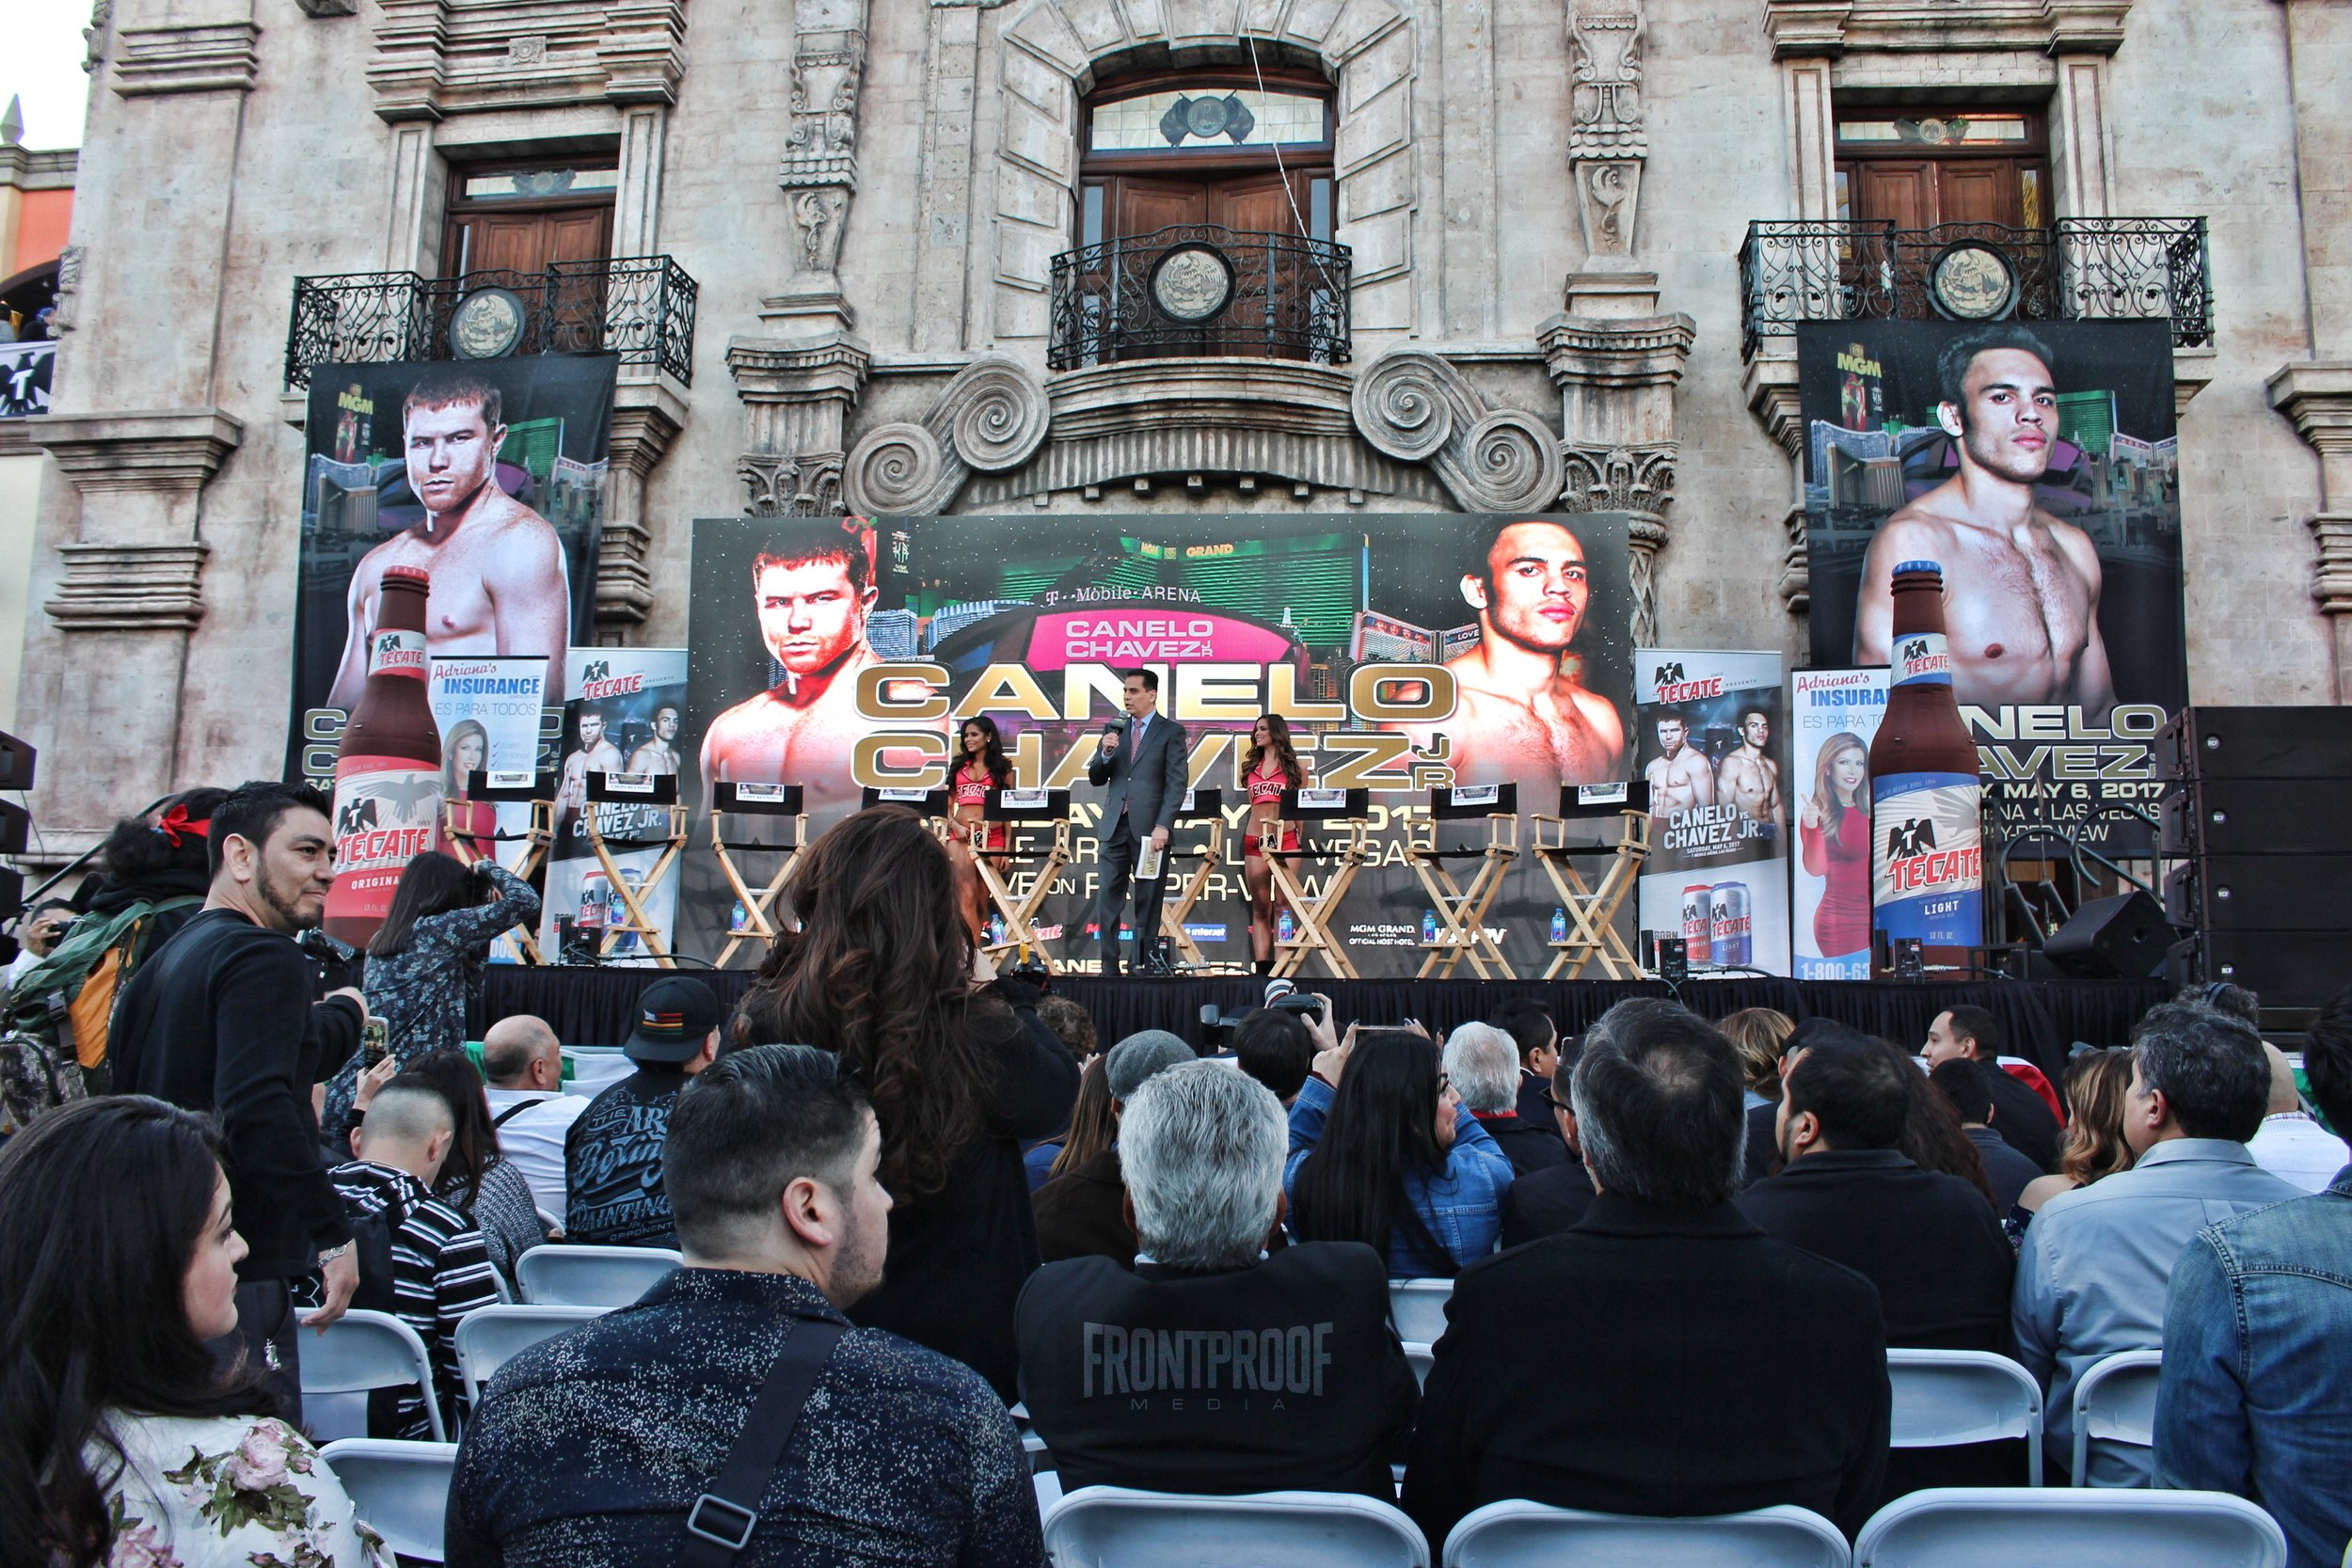 Stage from the Canelo-Chavez Jr. Los Angeles press conference. Photo: Danny Z/Frontproof Media